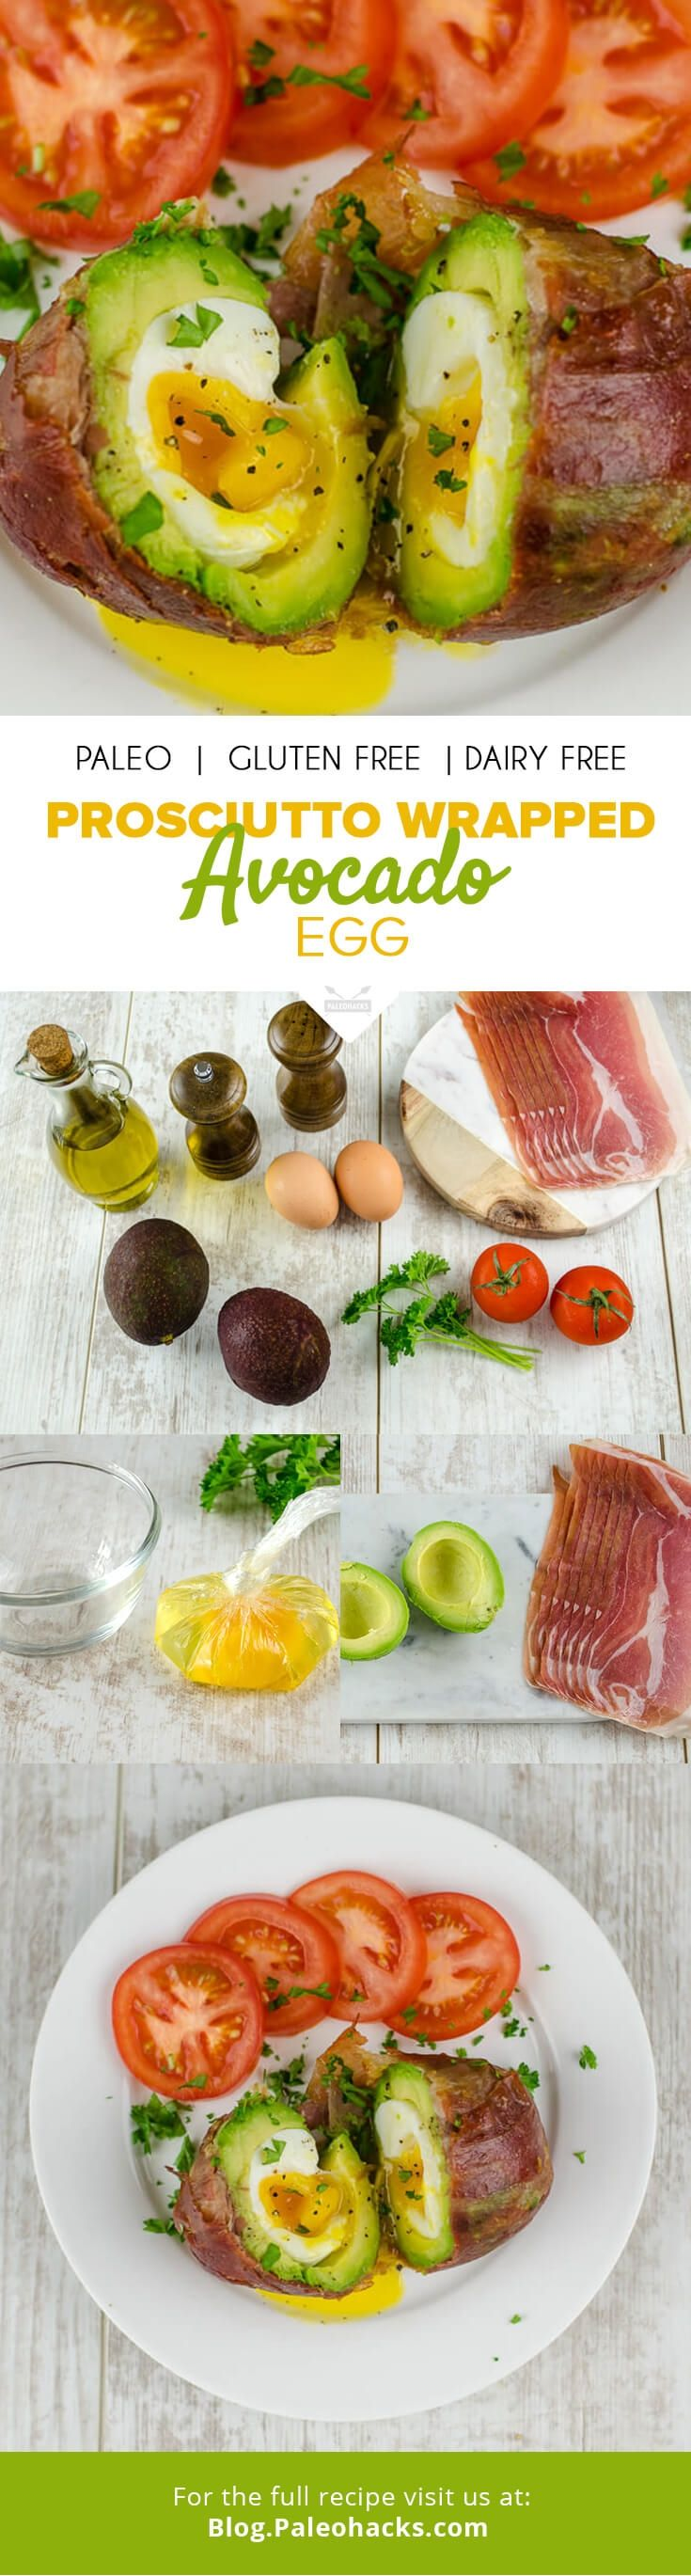 Give your morning a kick start with this prosciutto-wrapped avocado egg, loaded with omega-3, protein and healthy fatty acids \u2013 everything you need for a nourishing breakfast. For the full recipe, visit us at: http://paleo.co/wrappedavoegg #weightlossmotivation